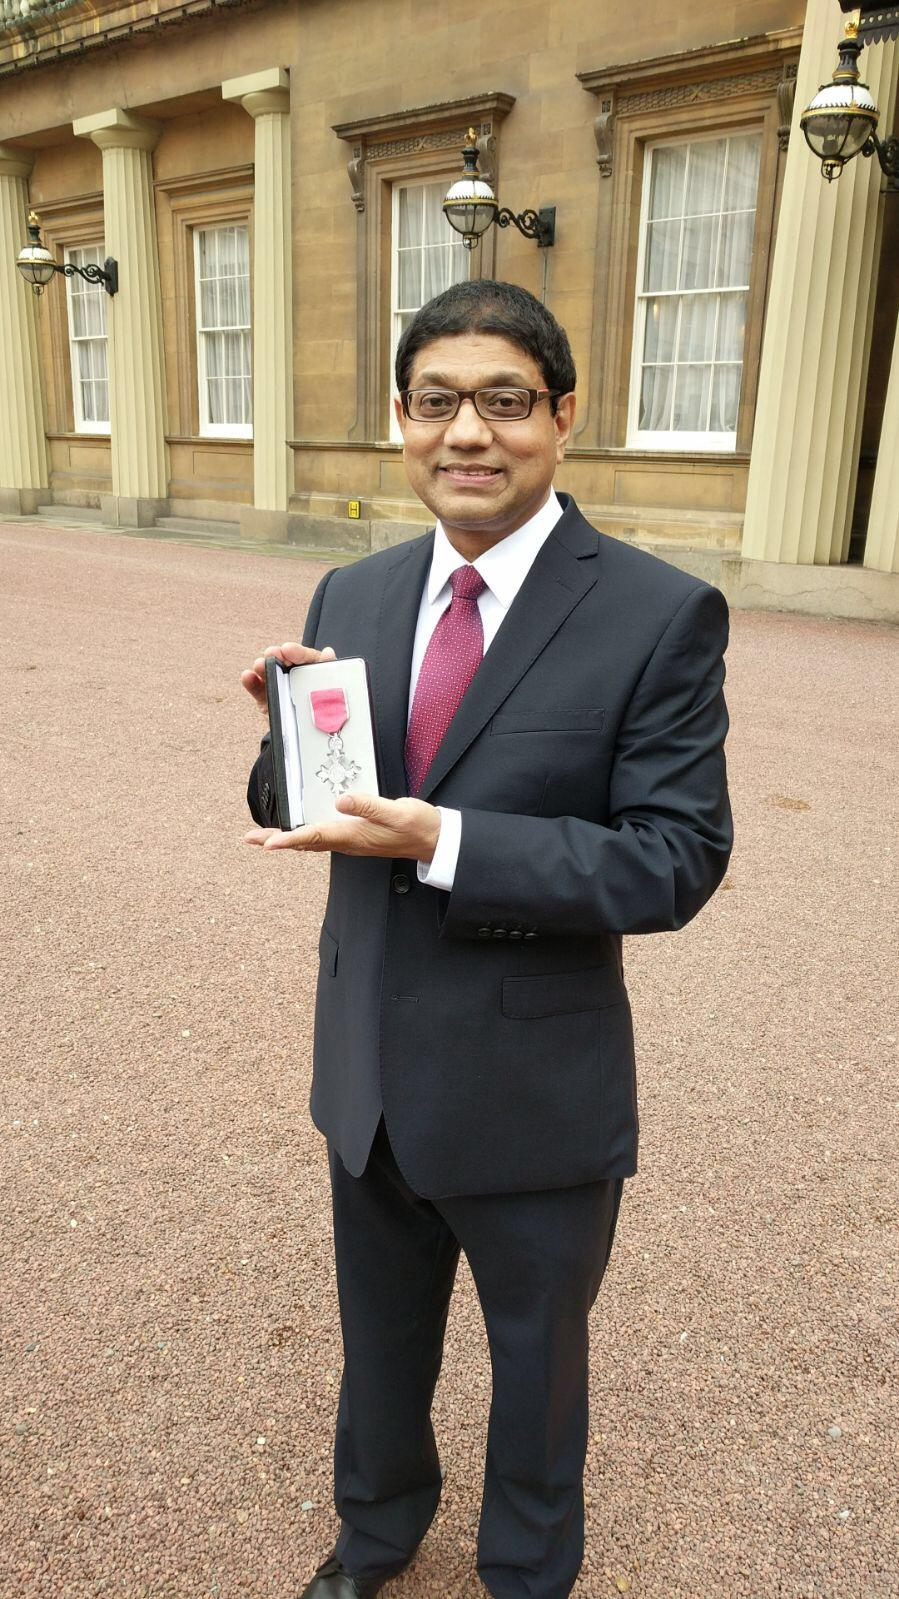 Oldham Council's Deputy Leader has received his MBE at Buckingham Palace.